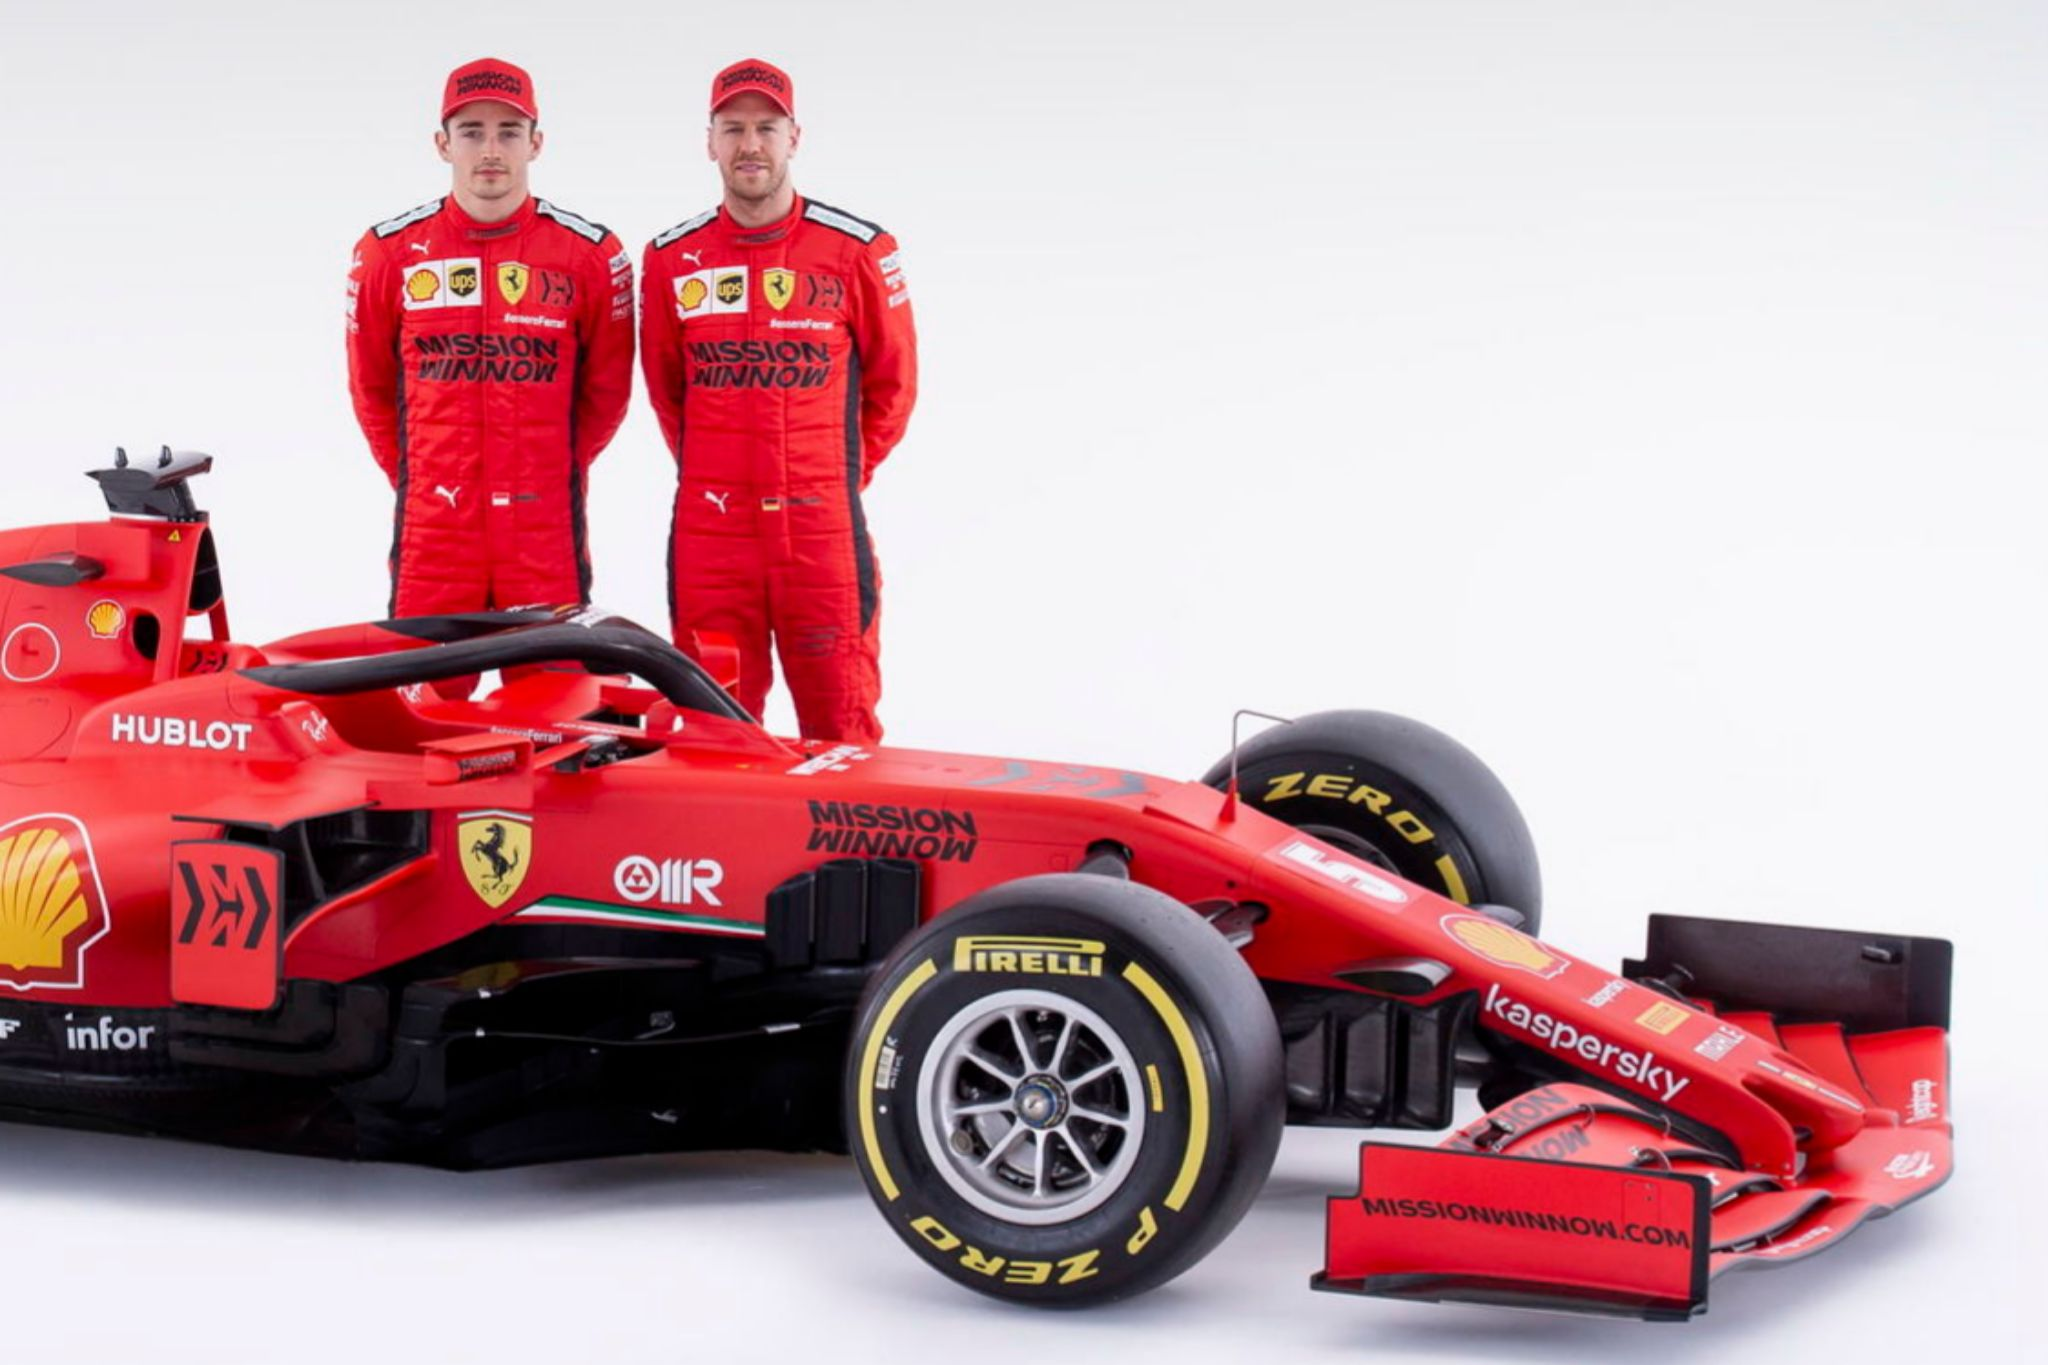 Zzzz (Italy), 11/02/2020.- A handout photo made available by the Ferrari press office on 11 February 2020 shows racing drivers Sebstian lt;HIT gt;Vettel lt;/HIT gt; (L) and Charles Leclerc with the SF1000, Ferraris car for the Formula One World Championship 2020. (Fórmula Uno, Italia) EFE/EPA/SCUDERIA FERRARI PRESS OFFICE HANDOUT EDITORIAL USE ONLY/NO SALES